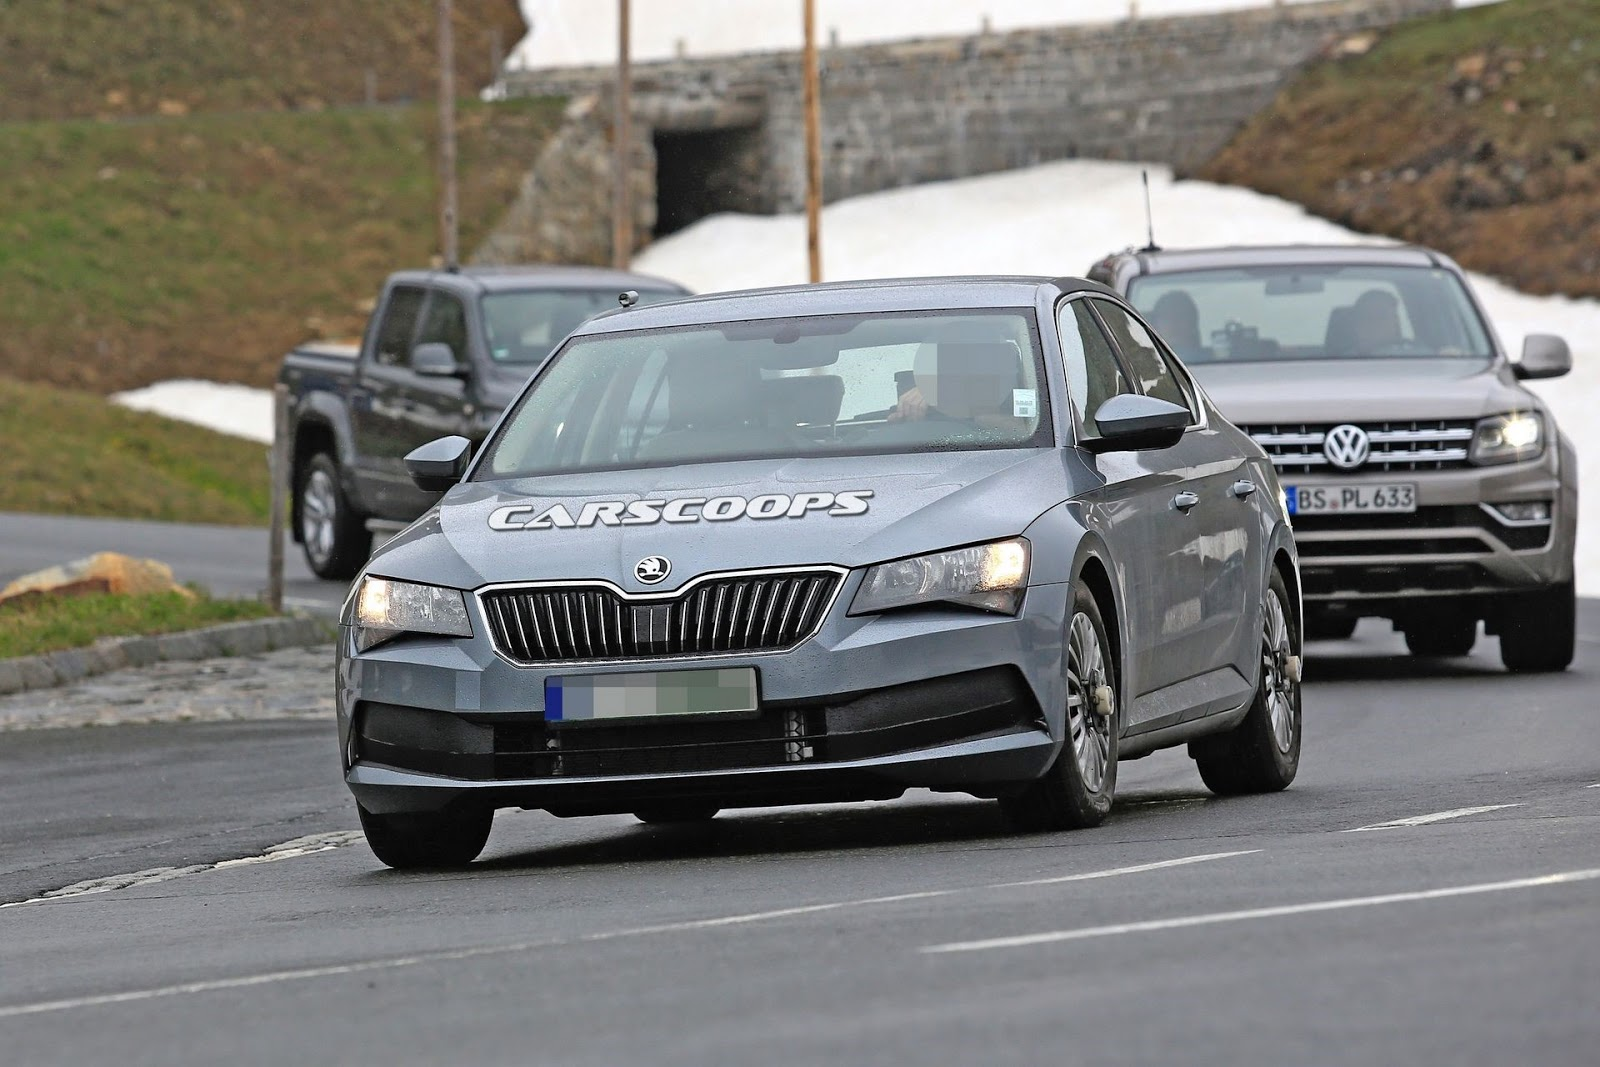 59 The Best Spy Shots Skoda Superb Exterior